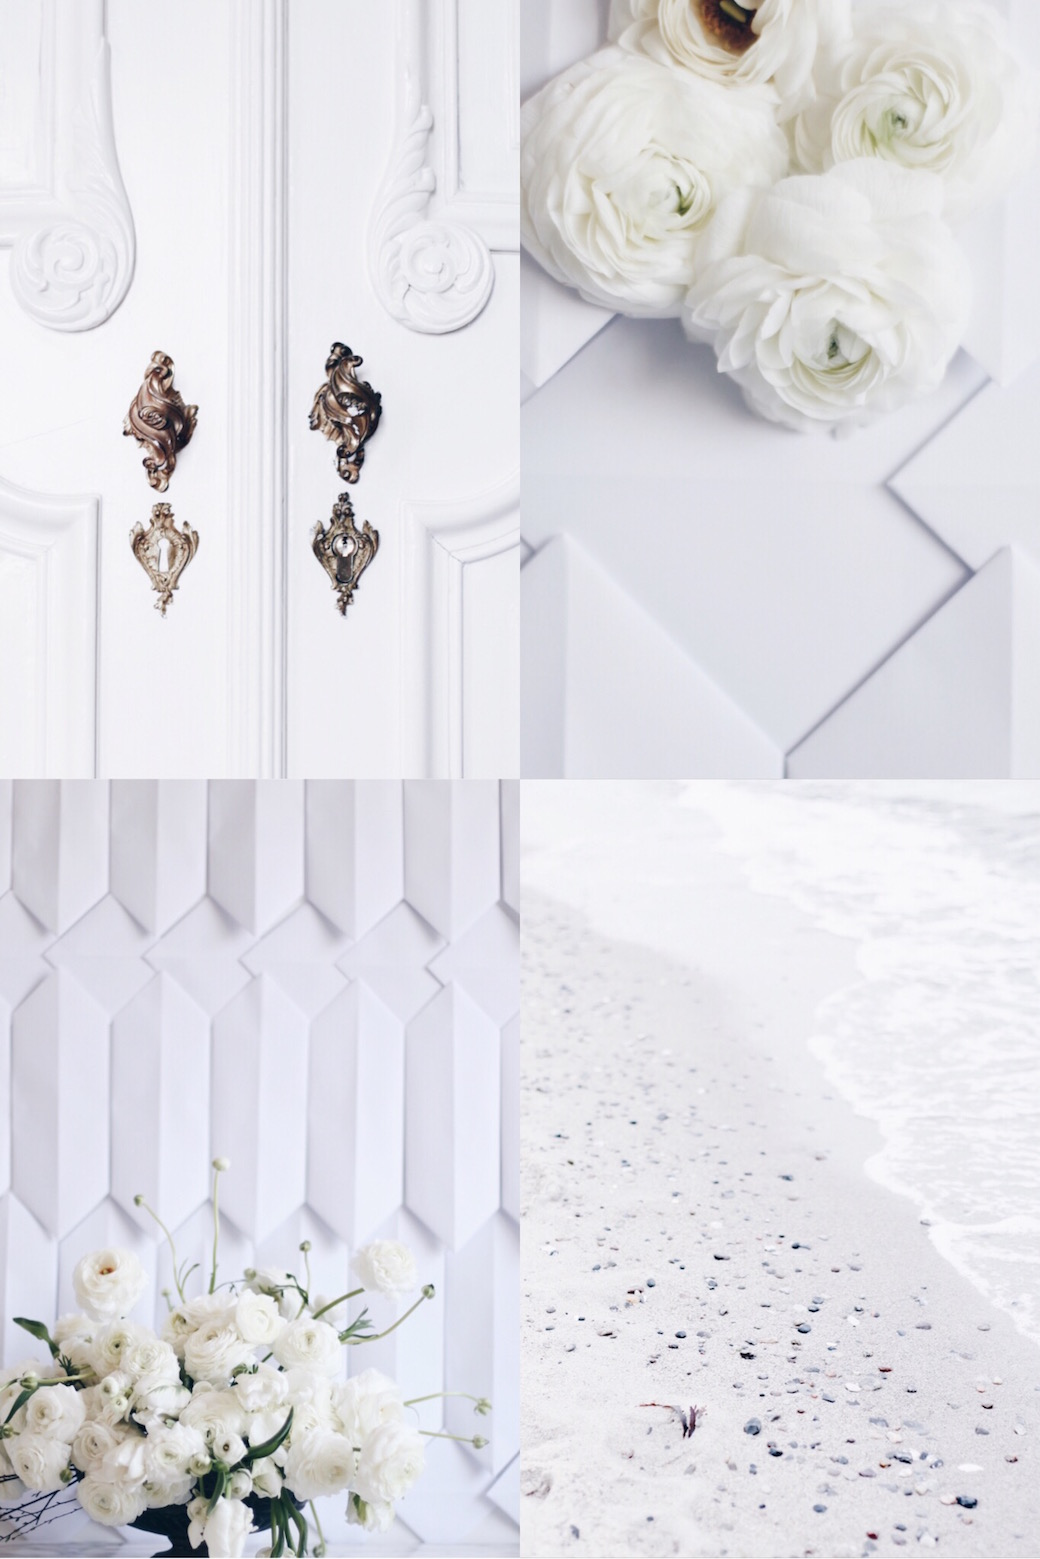 moodboard for white flower arrangement via anastasiabenko.com